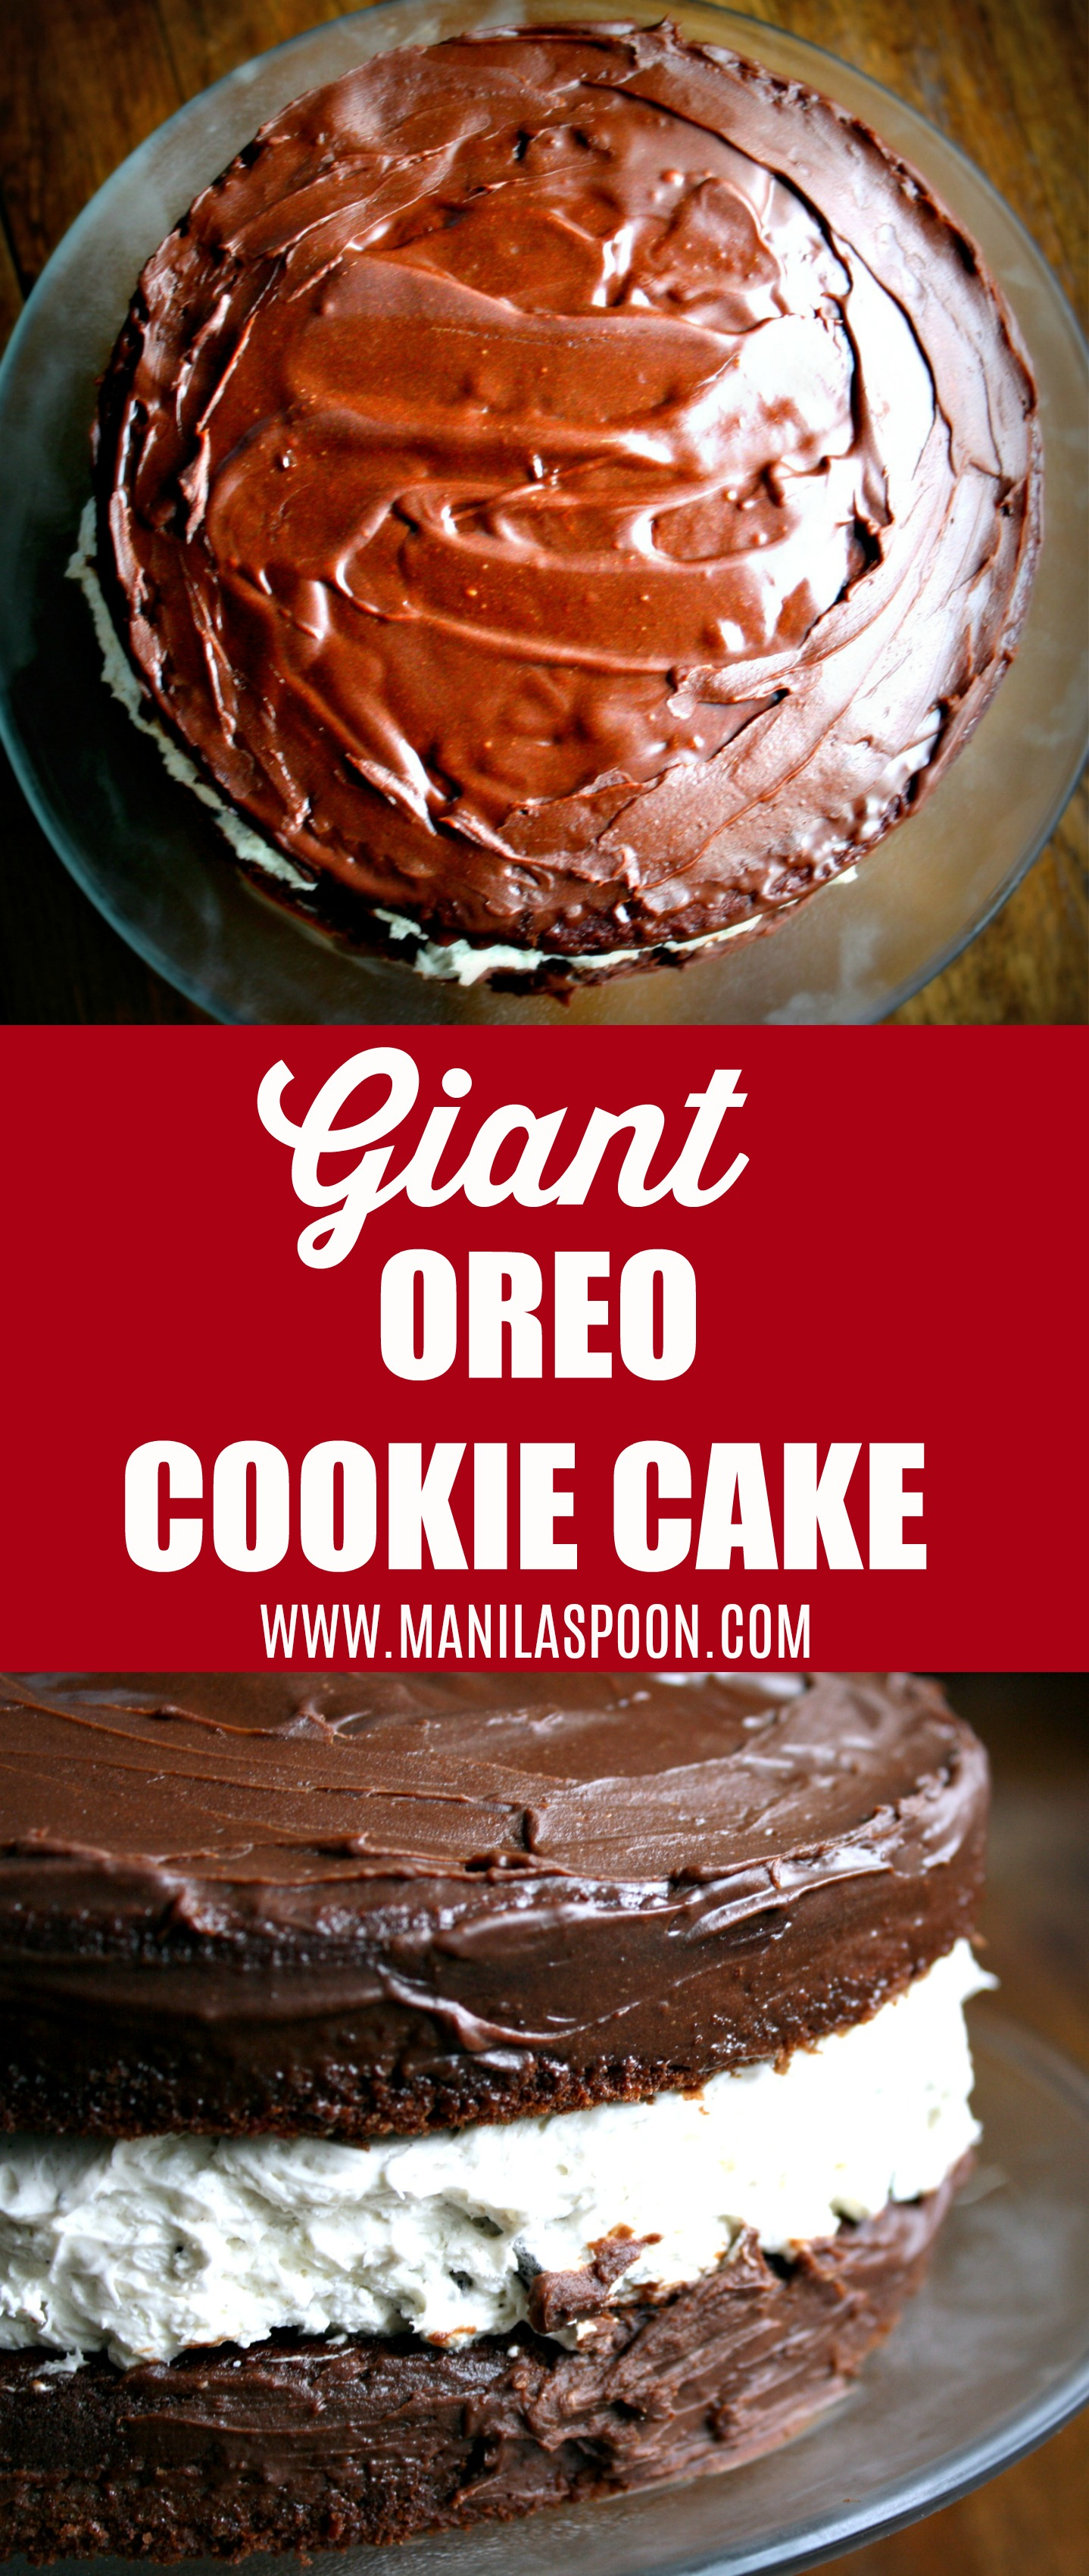 This is my kids' favorite cake - Giant Oreo Cookie Cake! It's so fun and easy to make and it's the kind of Oreos you can share with everyone!!